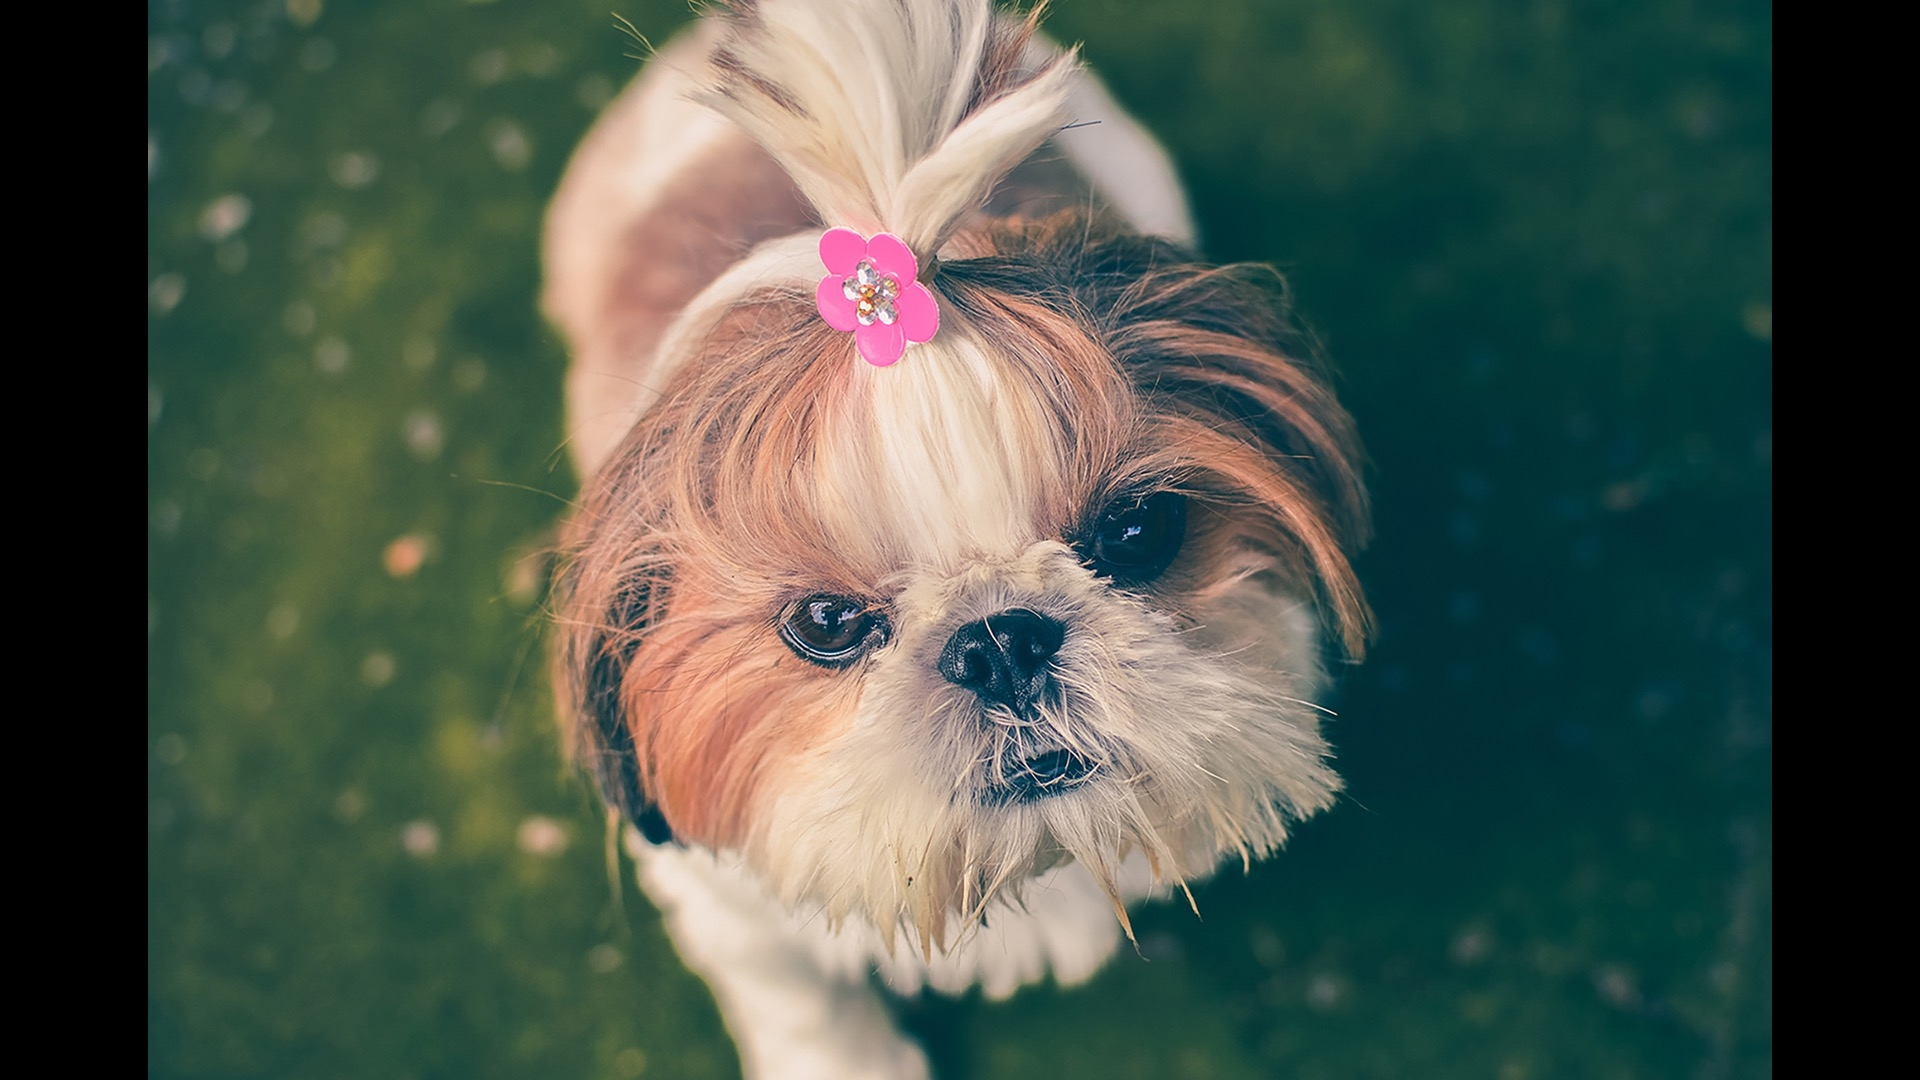 puppy with pink flower in hair